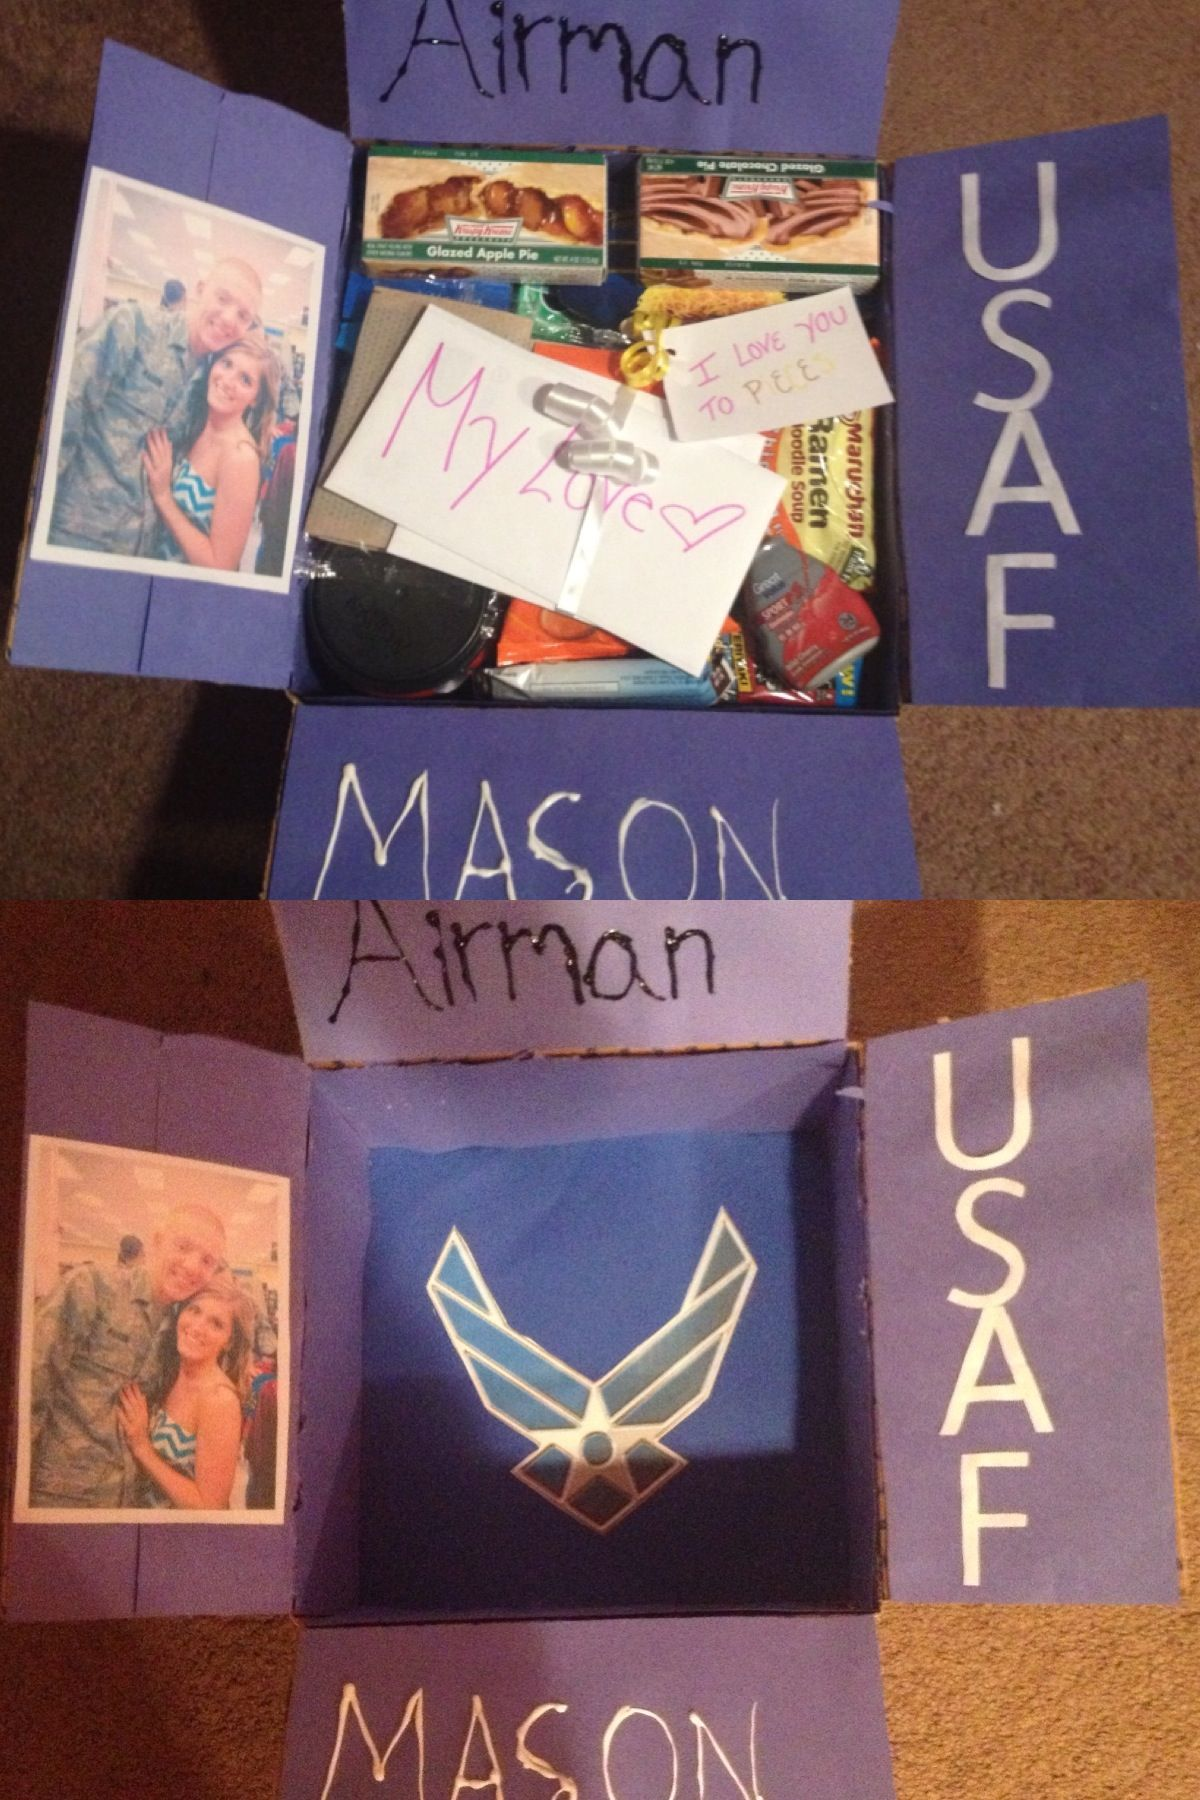 The care package I sent to Air Force boyfriend